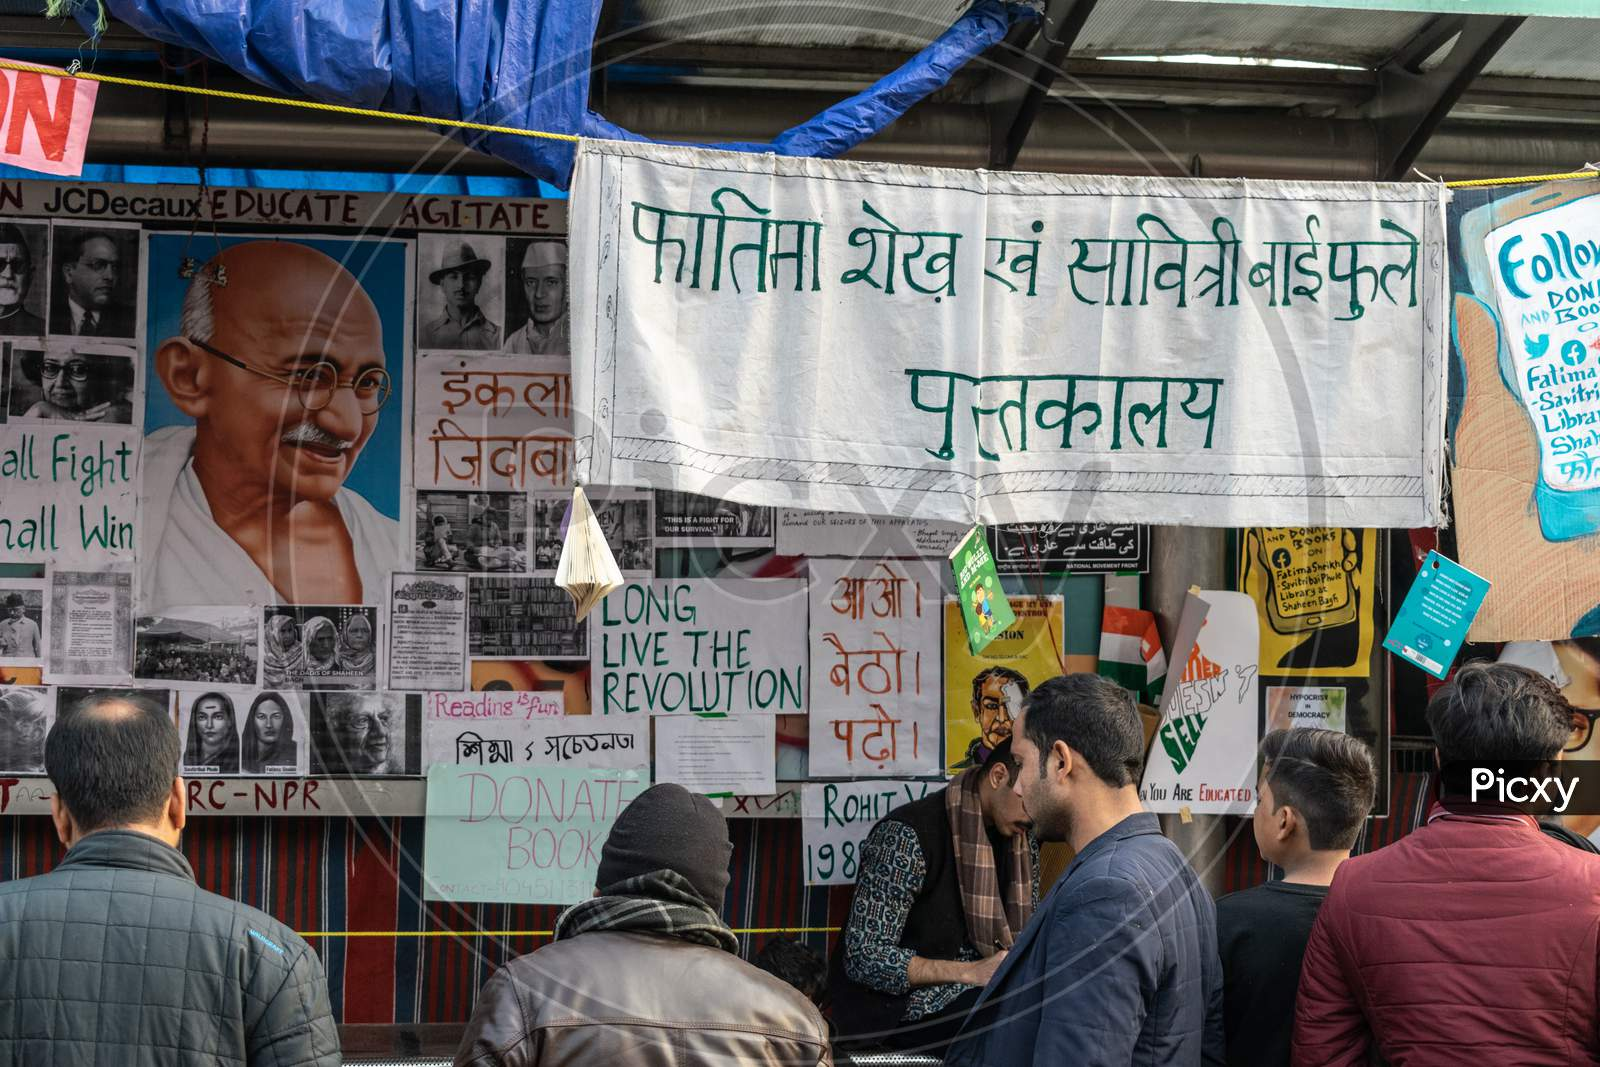 A library setup by protesters at Shaheen Bagh, protesting against Citizenship Amendment Act Caa National Register Of Citizens Nrc And National Population Register Npr